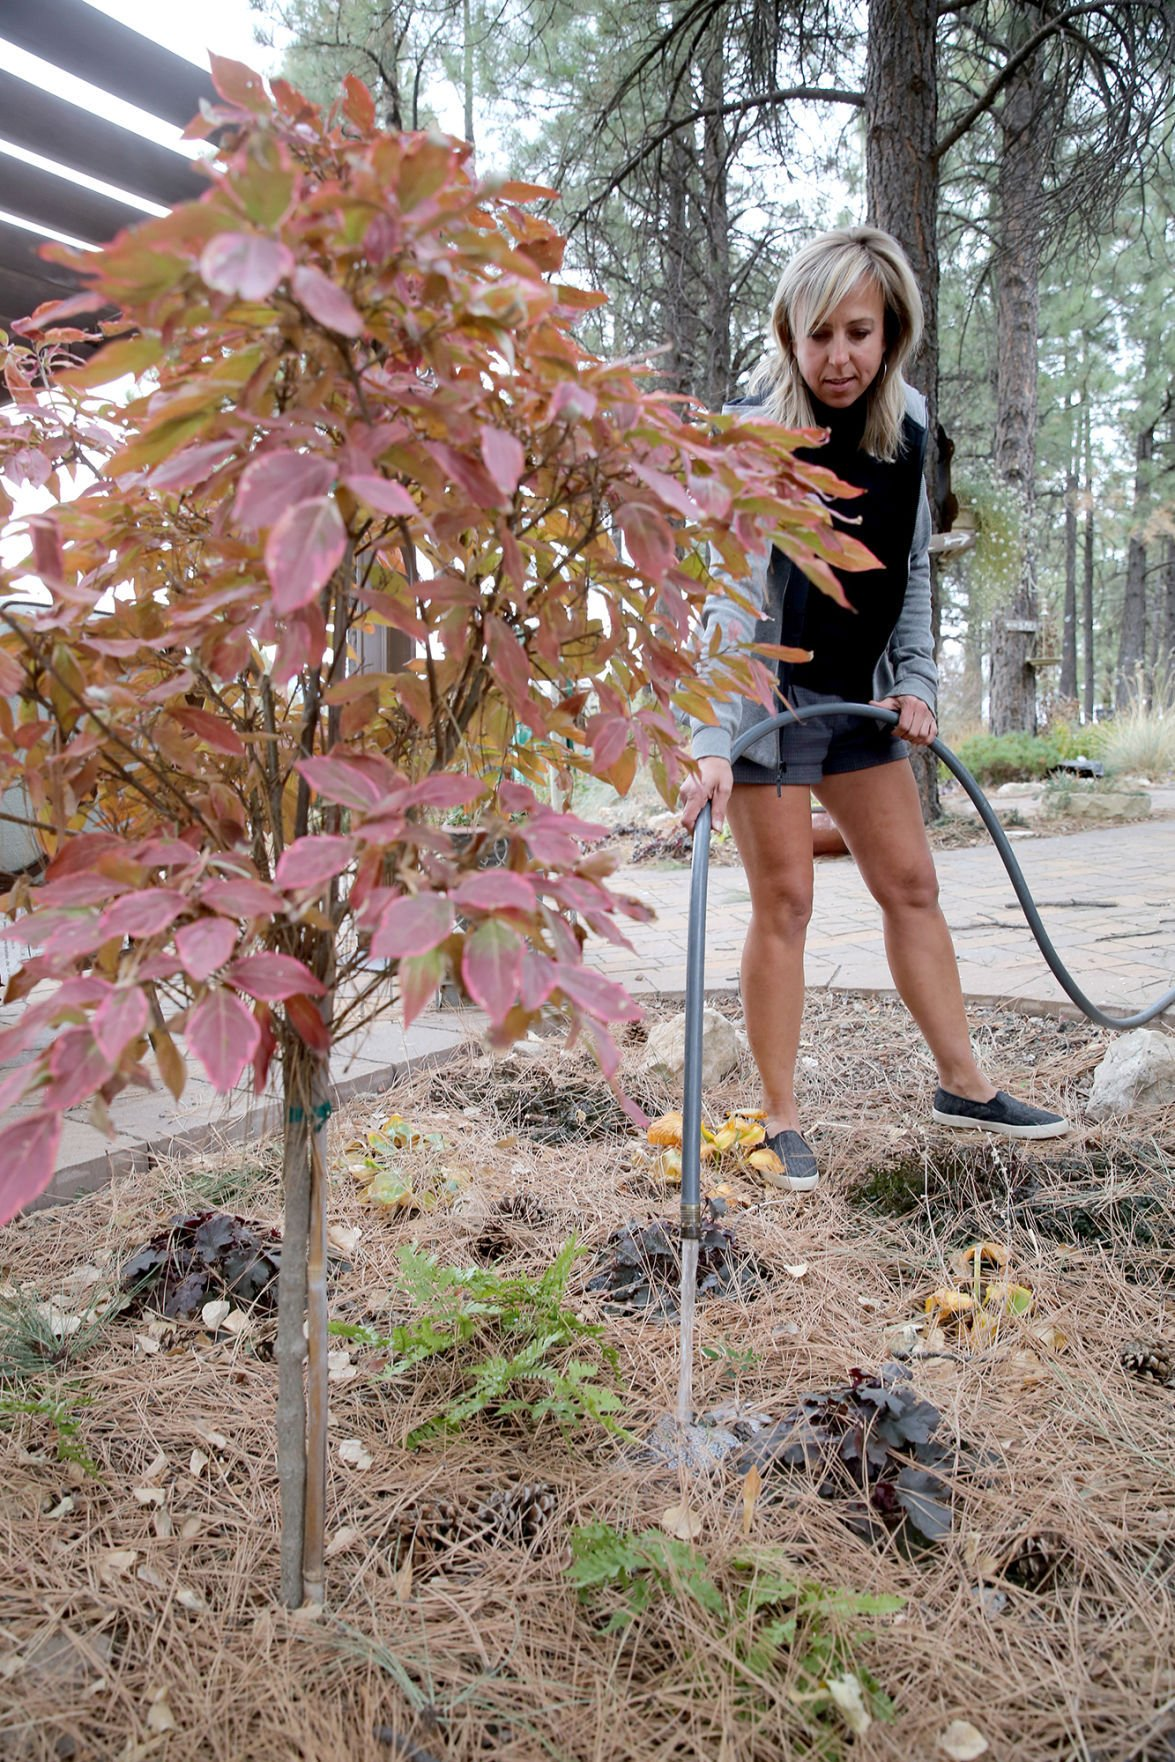 Caring For Plants in the Dry